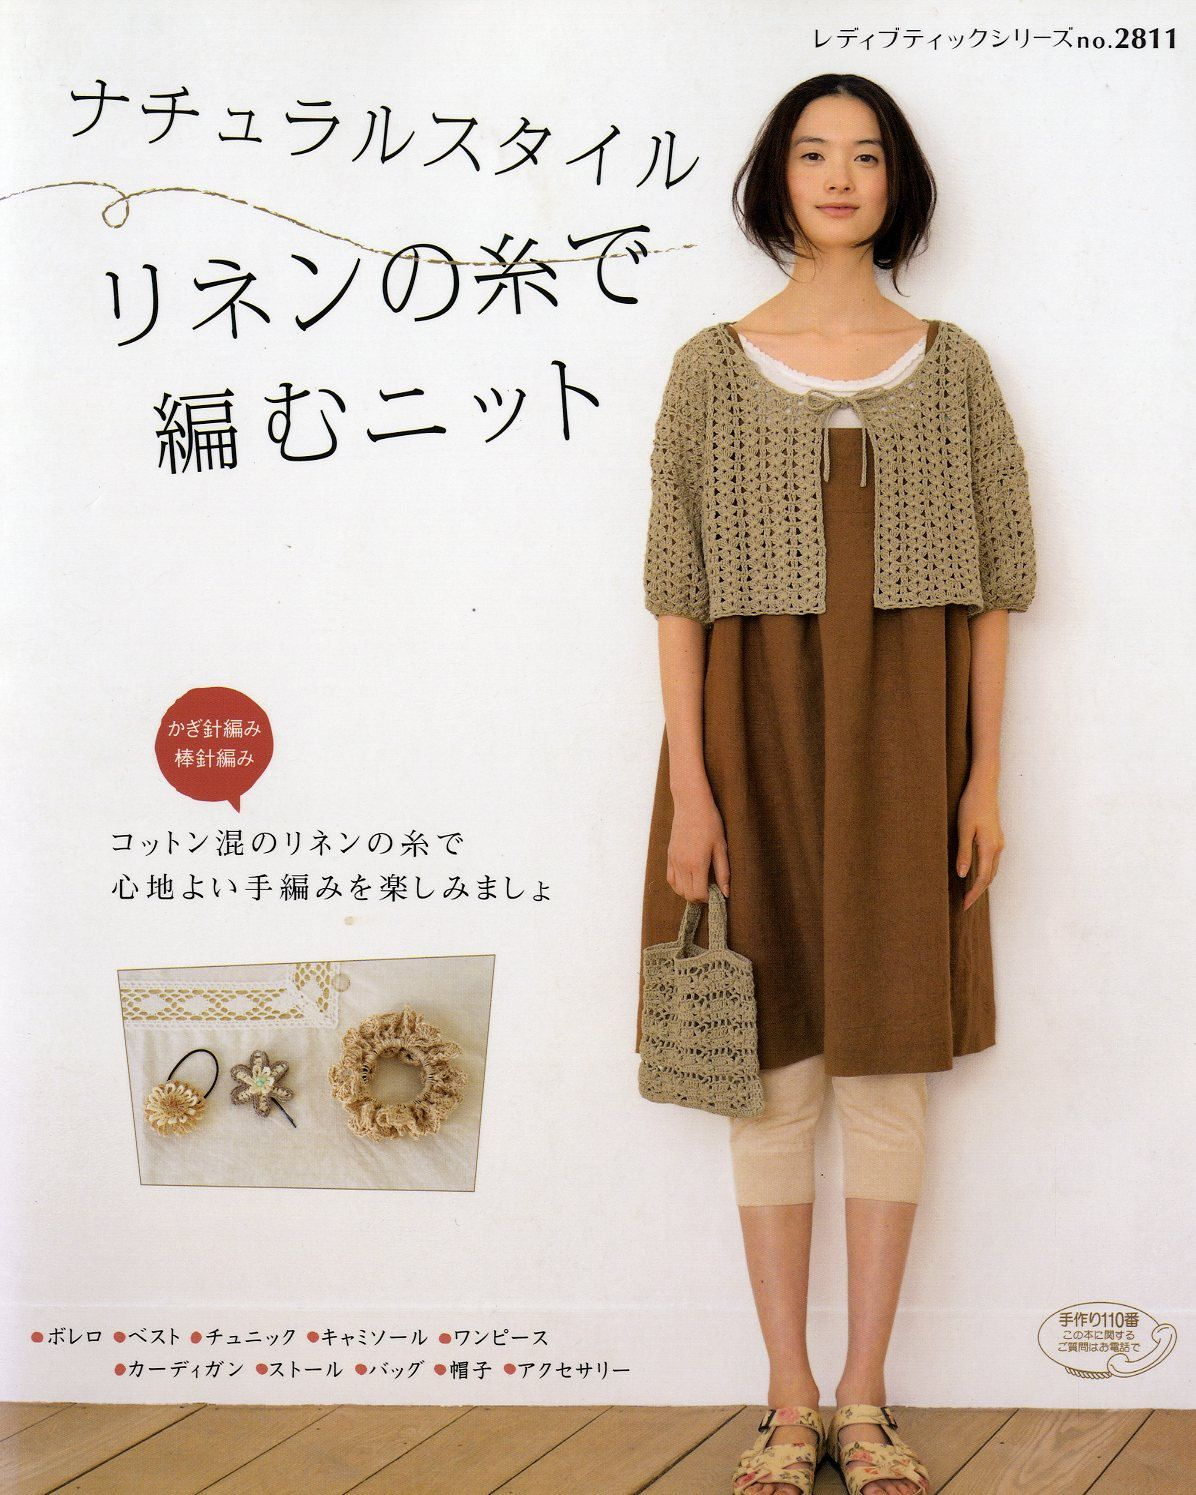 Japanese knit crochet pattern book ay8 natural by megsfavorites japanese crochet patterns are so cute so many boho styled patterns here is how to read japanese crochet and knitting patterns without having to learn a bankloansurffo Images